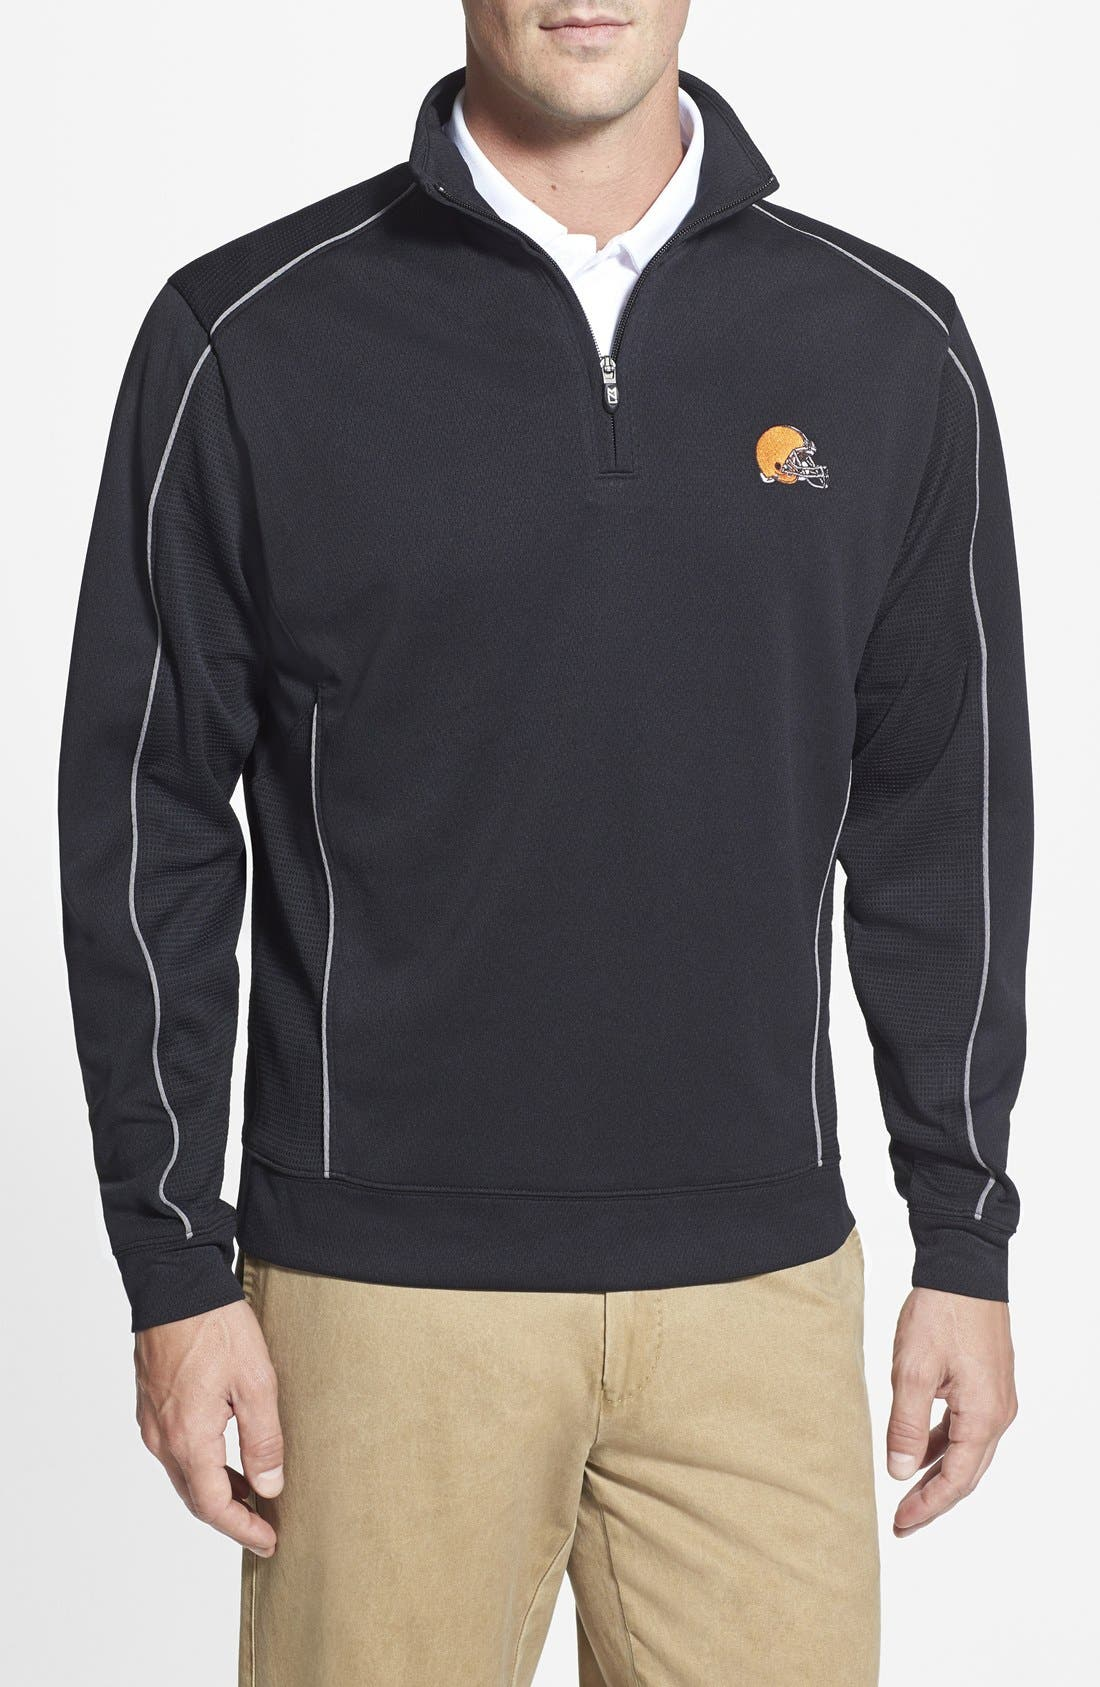 Alternate Image 1 Selected - Cutter & Buck Cleveland Browns - Edge DryTec Moisture Wicking Half Zip Pullover